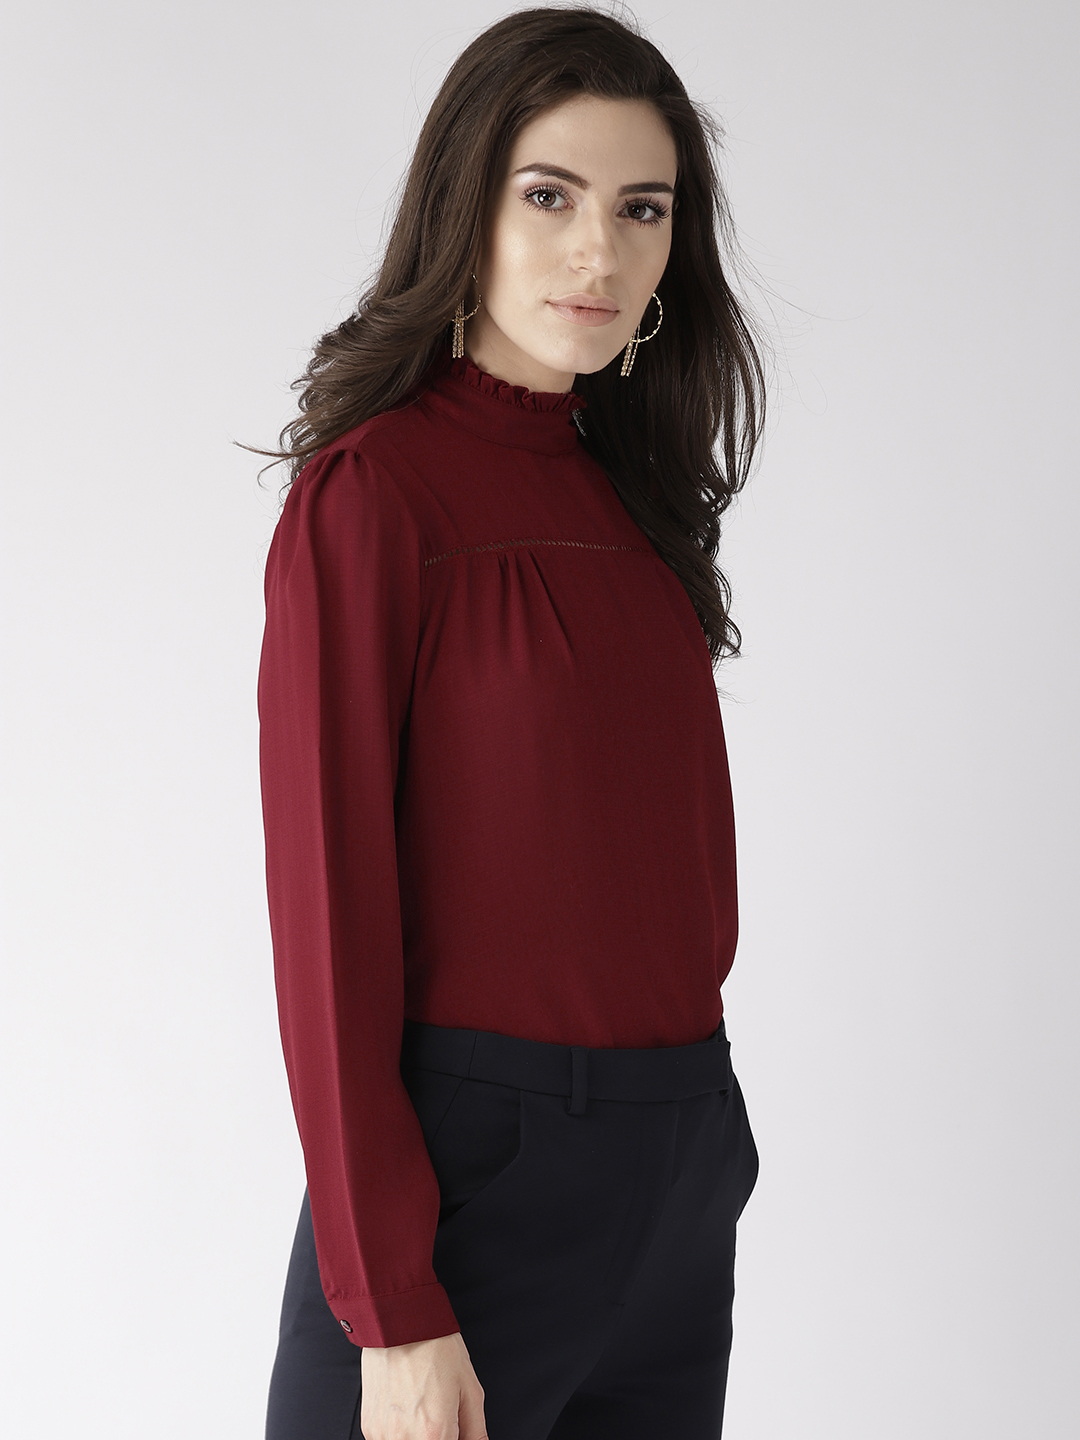 Tops-The New Look Maroon Top6